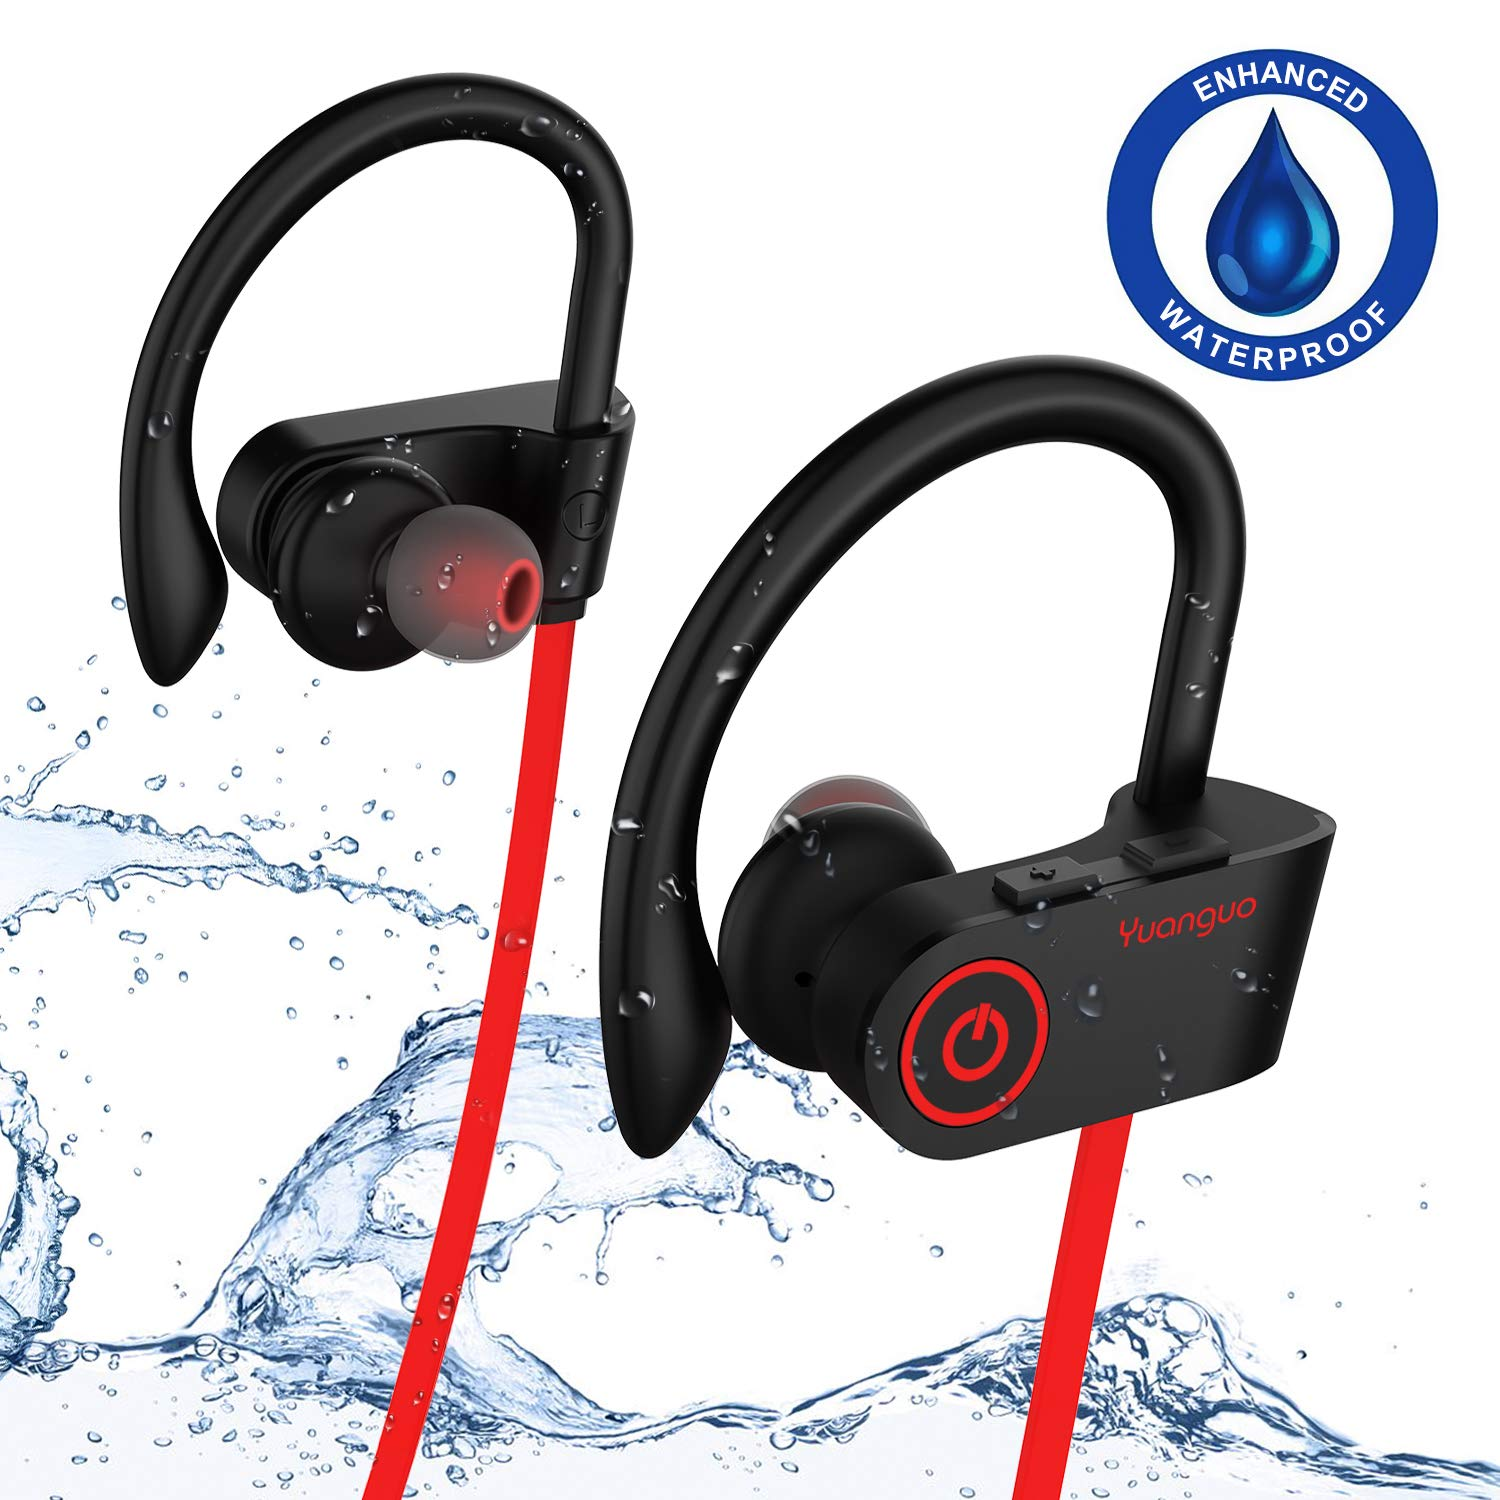 Bluetooth Headphones, IPX7 Waterproof HolyHigh Wireless Earbuds Headphones with Mic,Surround Stereo Secure Fit, Sport Running Workout Bluetooth Wireless Earbuds Headset Earphones for Android iOS Red